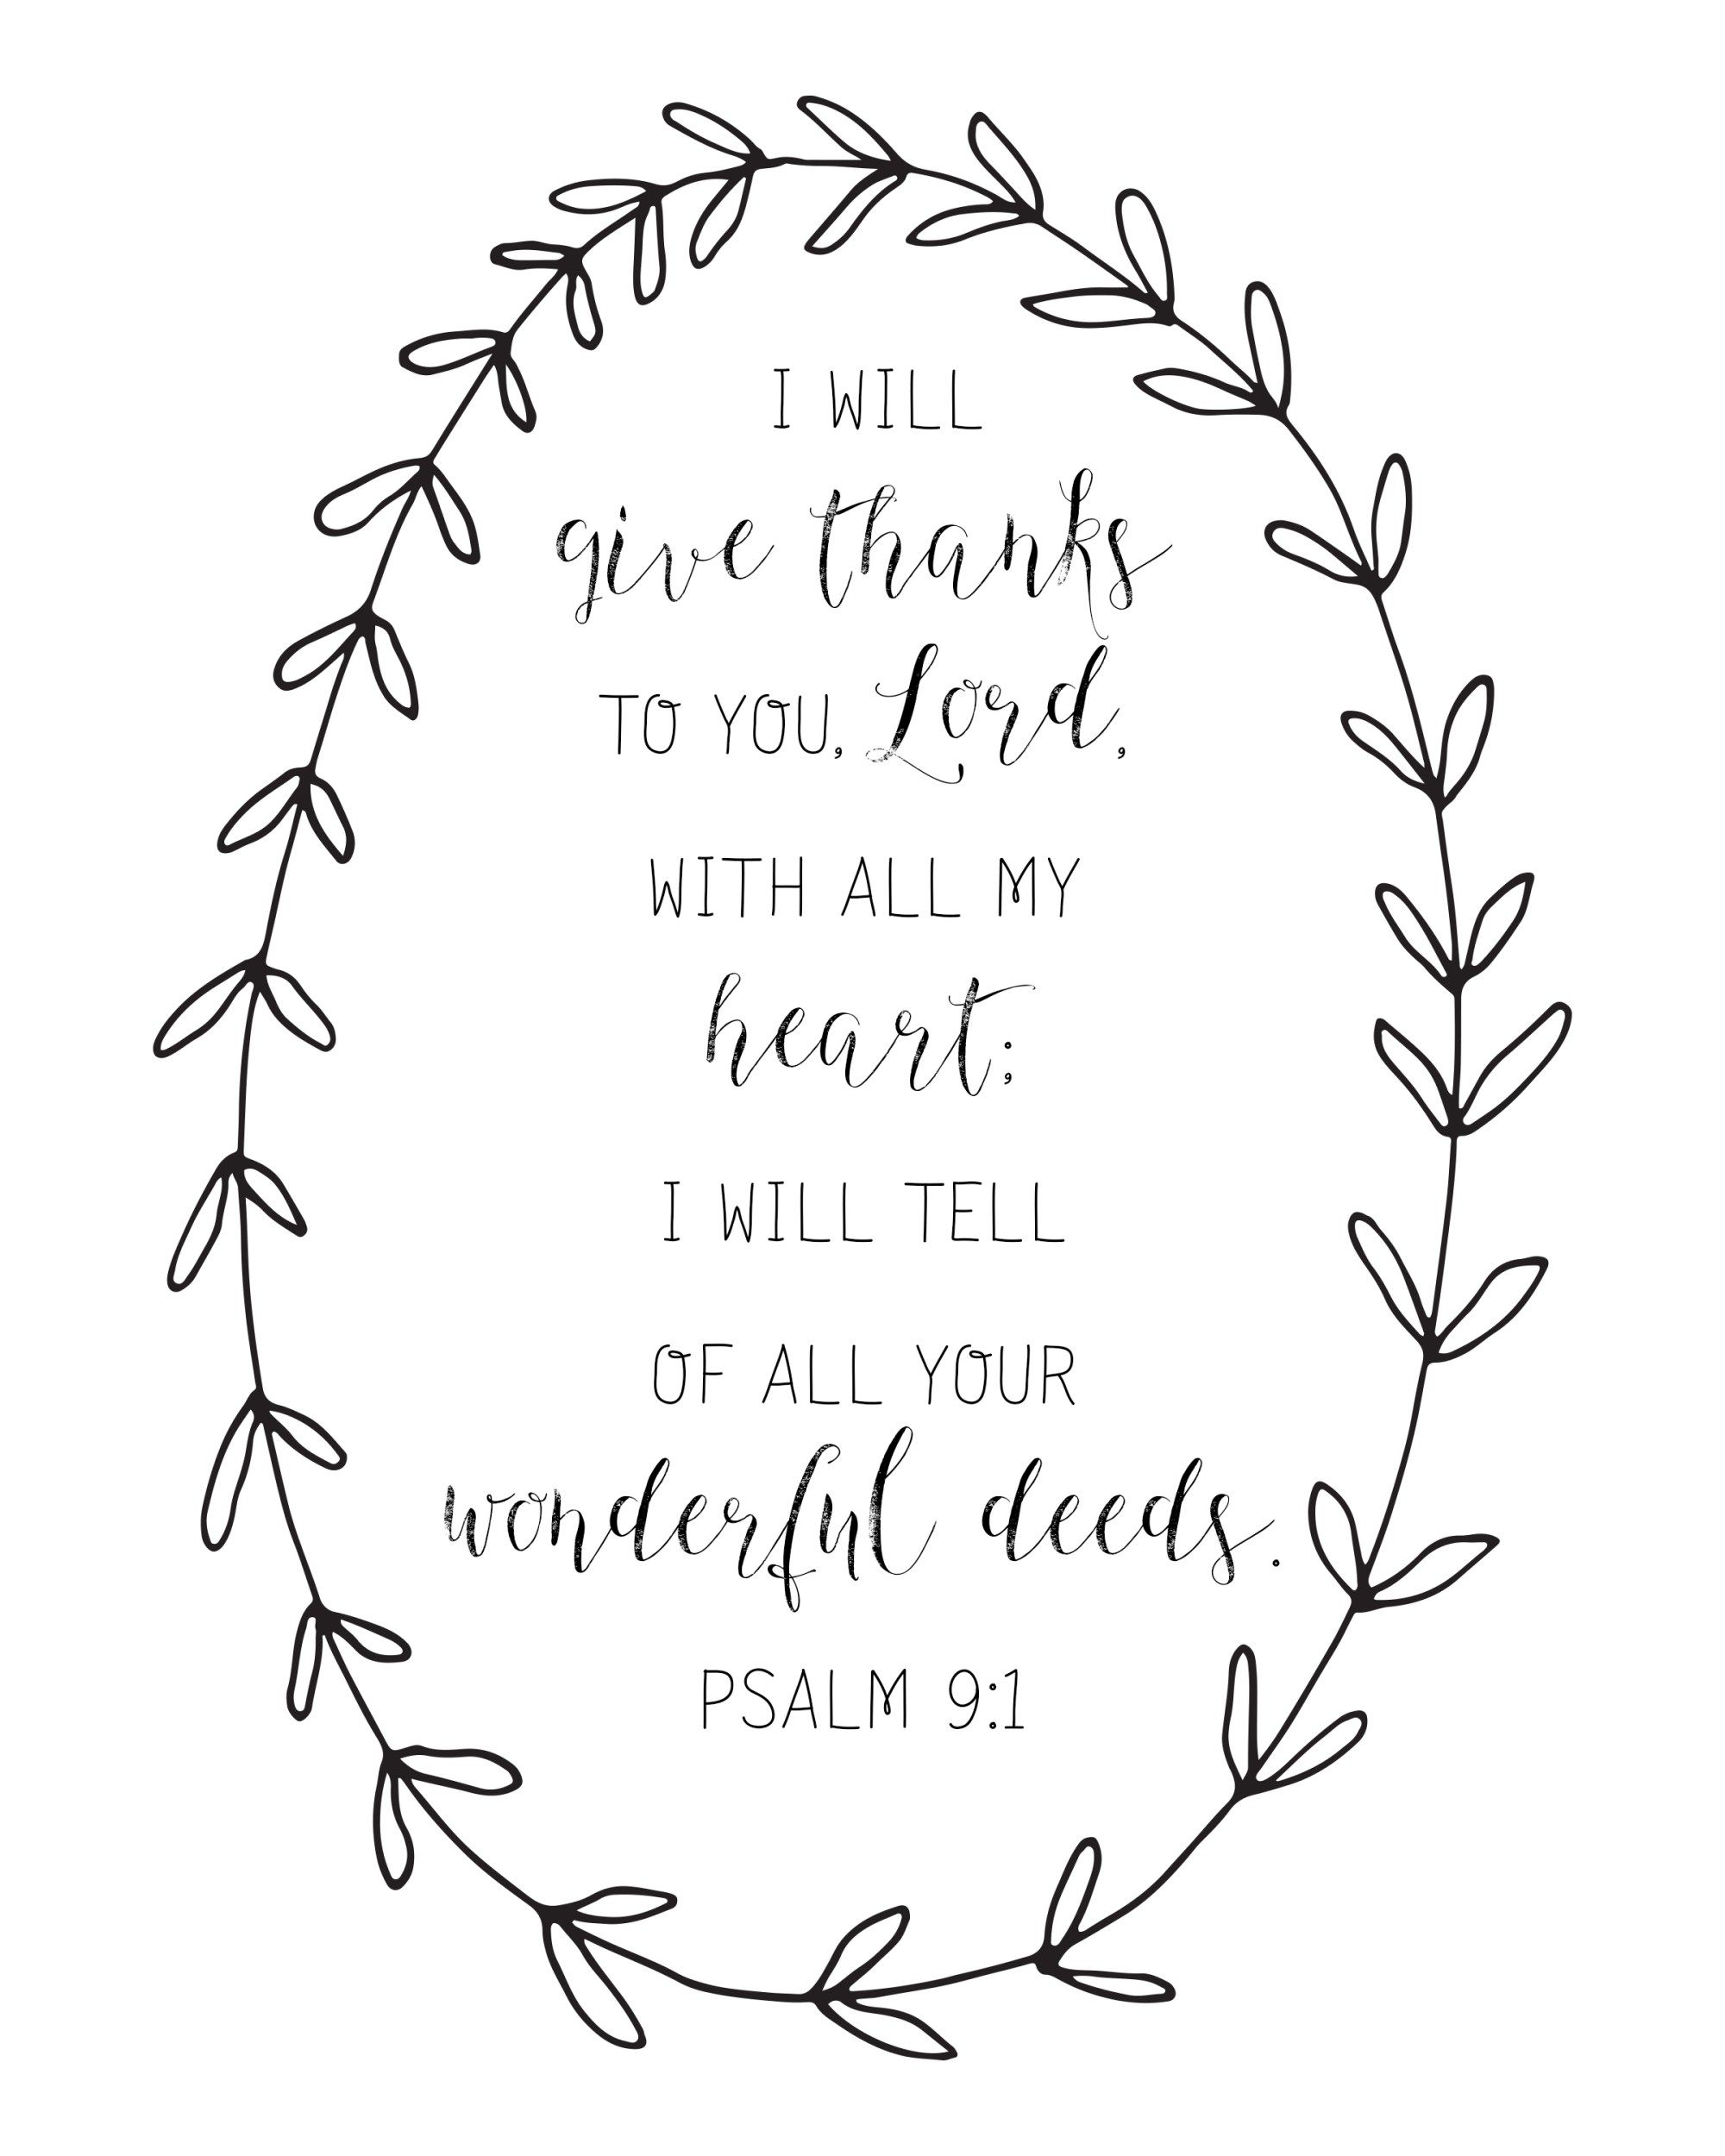 4 Thanksgiving Free Printables Bible Verses Amp Quotes 1 Thessalonians 5 18 Psalm 9 1 Gather